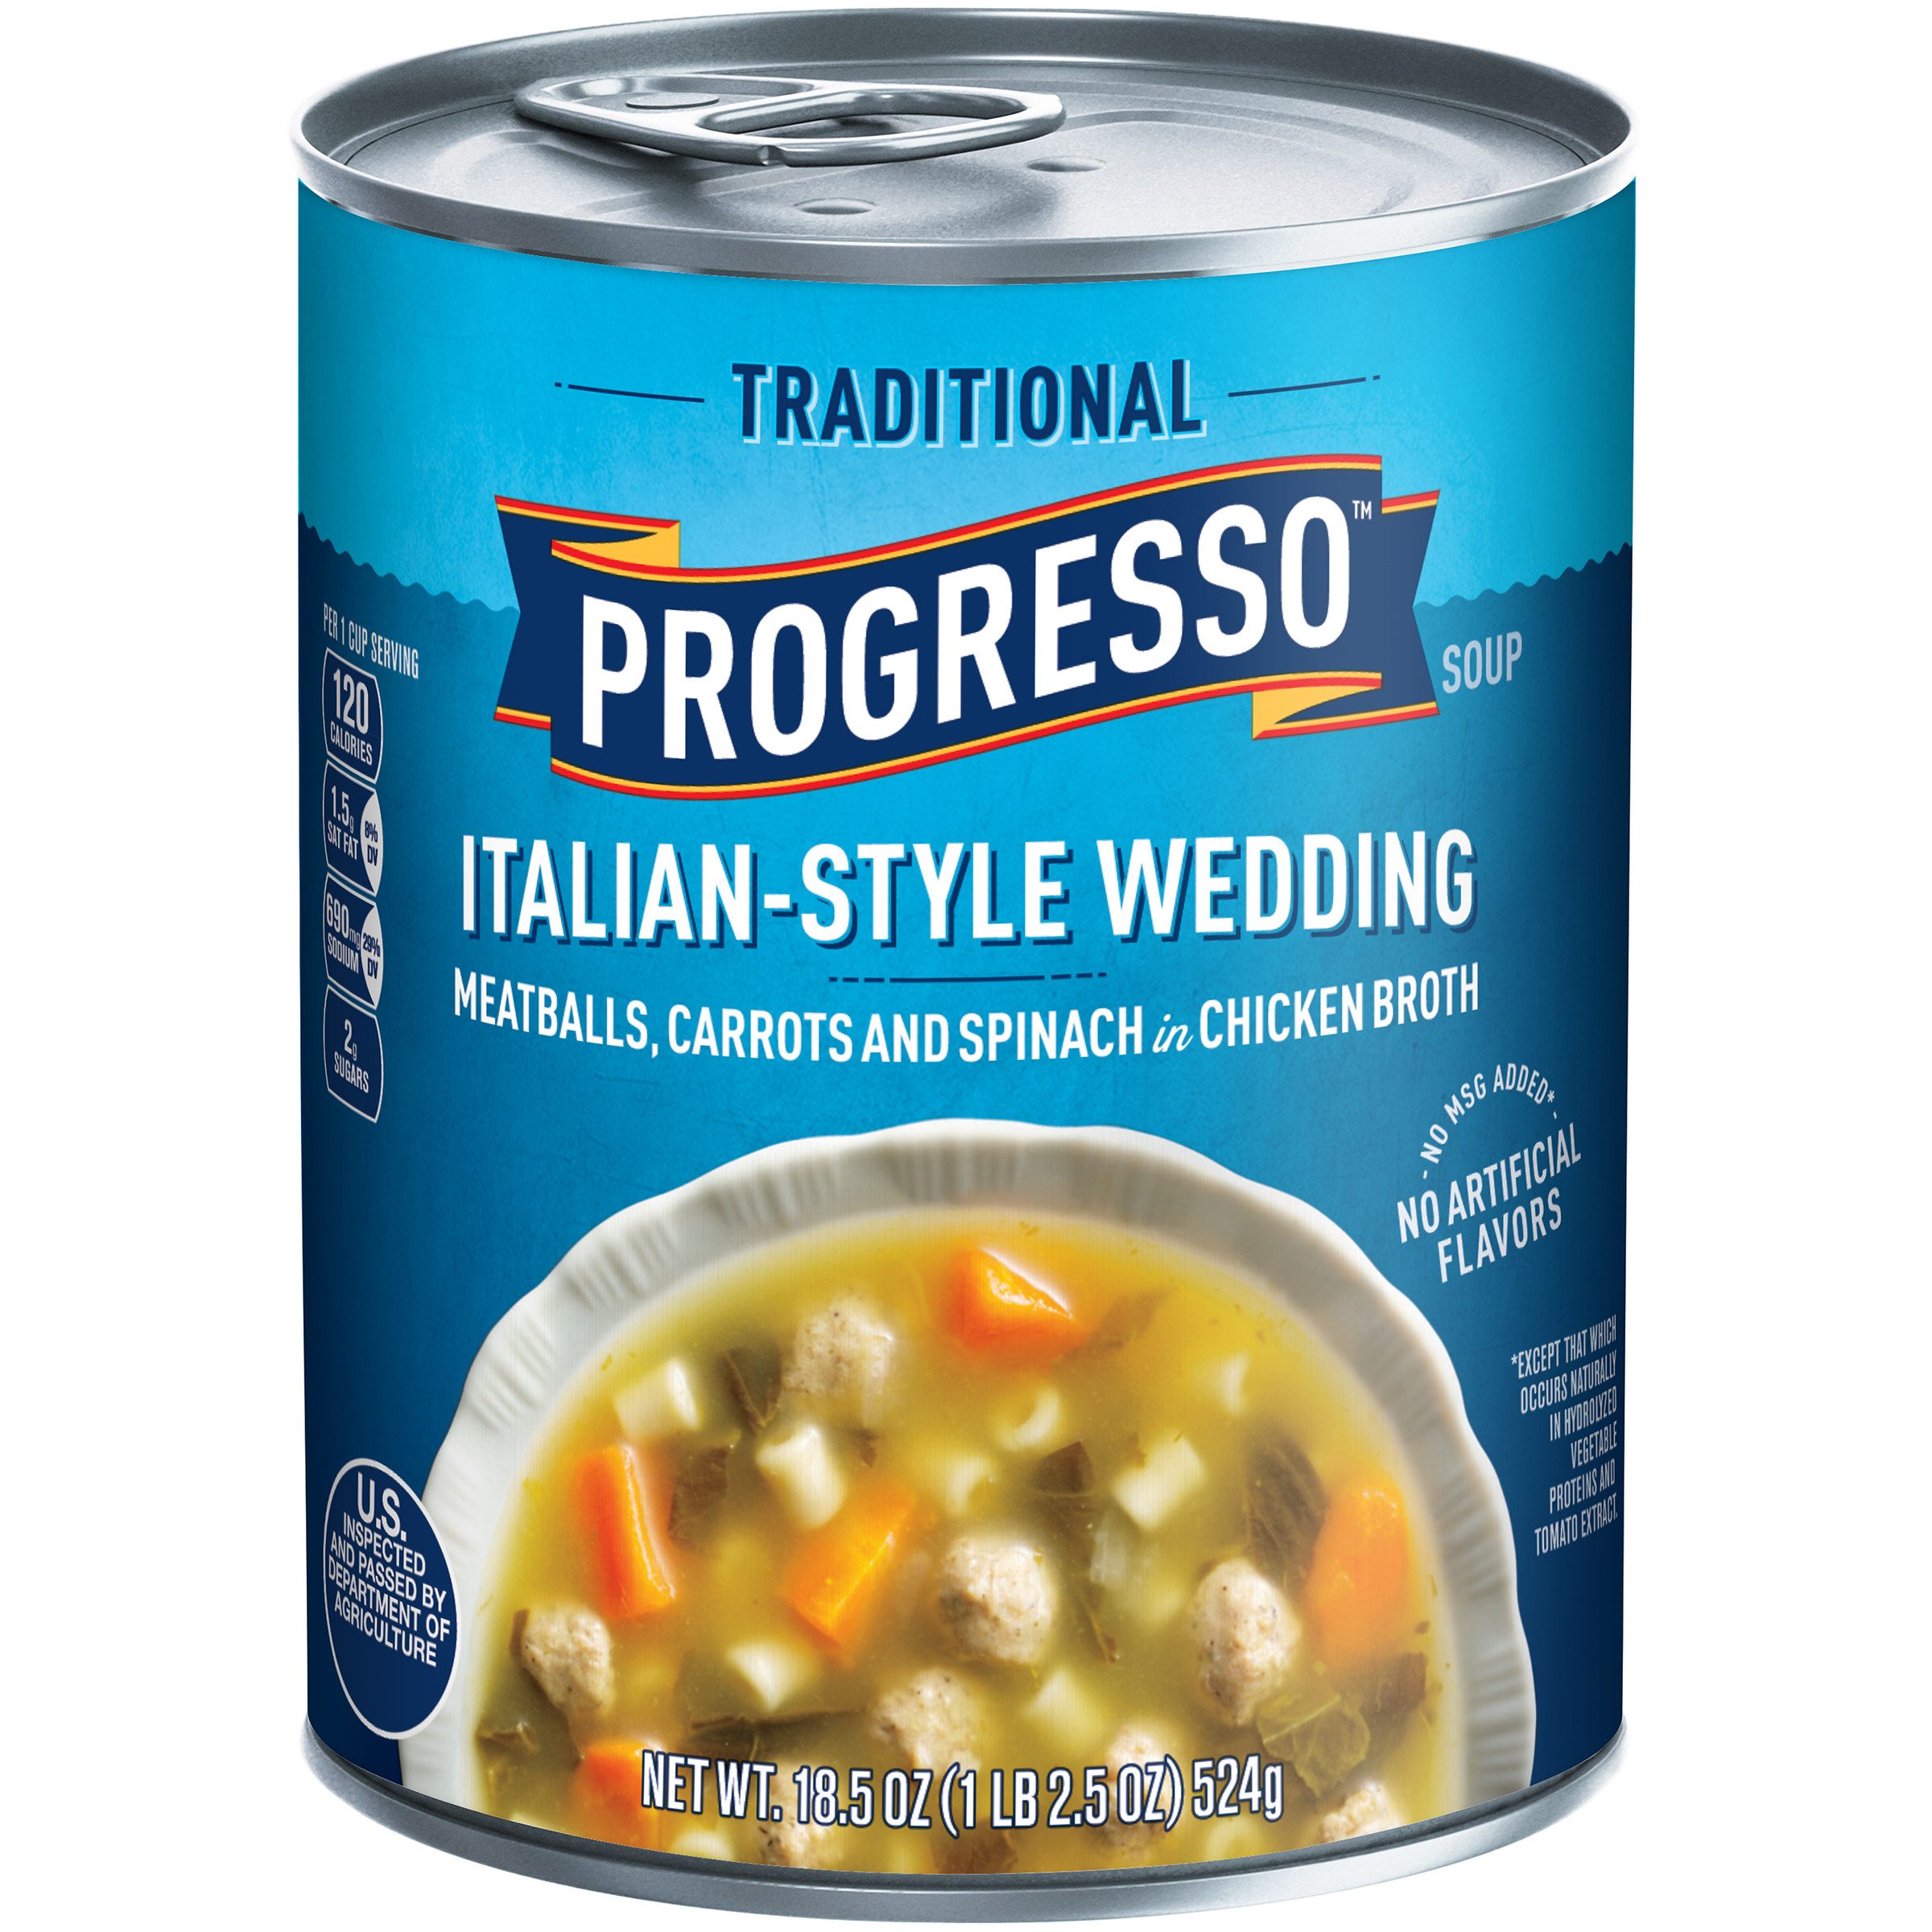 Progresso® Traditional Italian-Style Wedding Soup 18.5 oz. Can